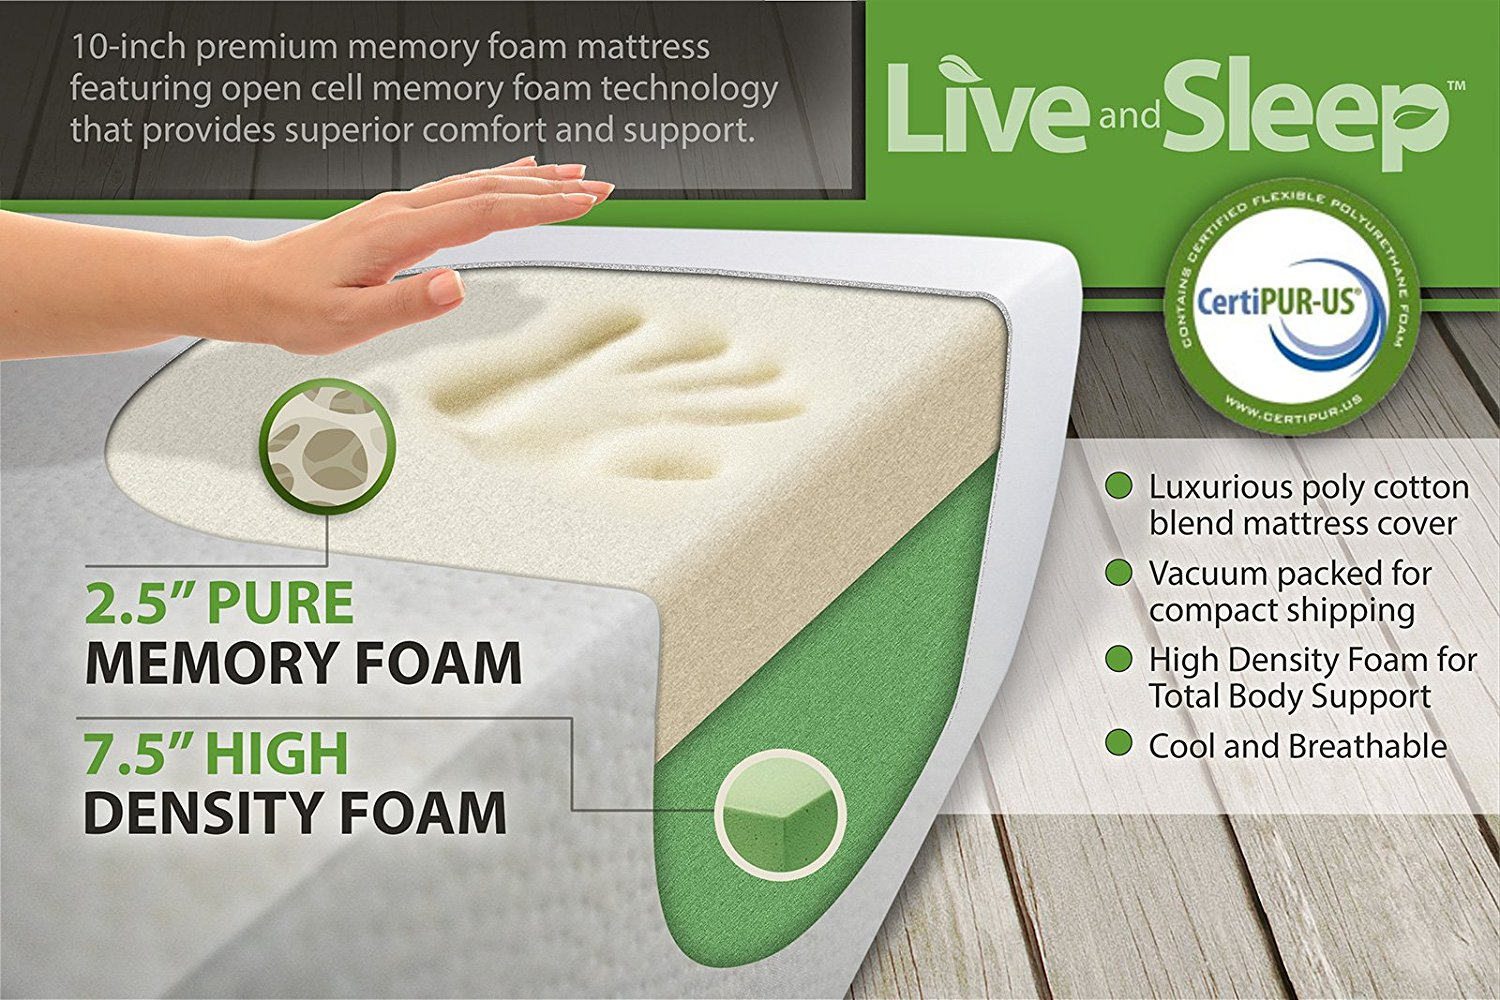 live and sleep mattress review 10 inch